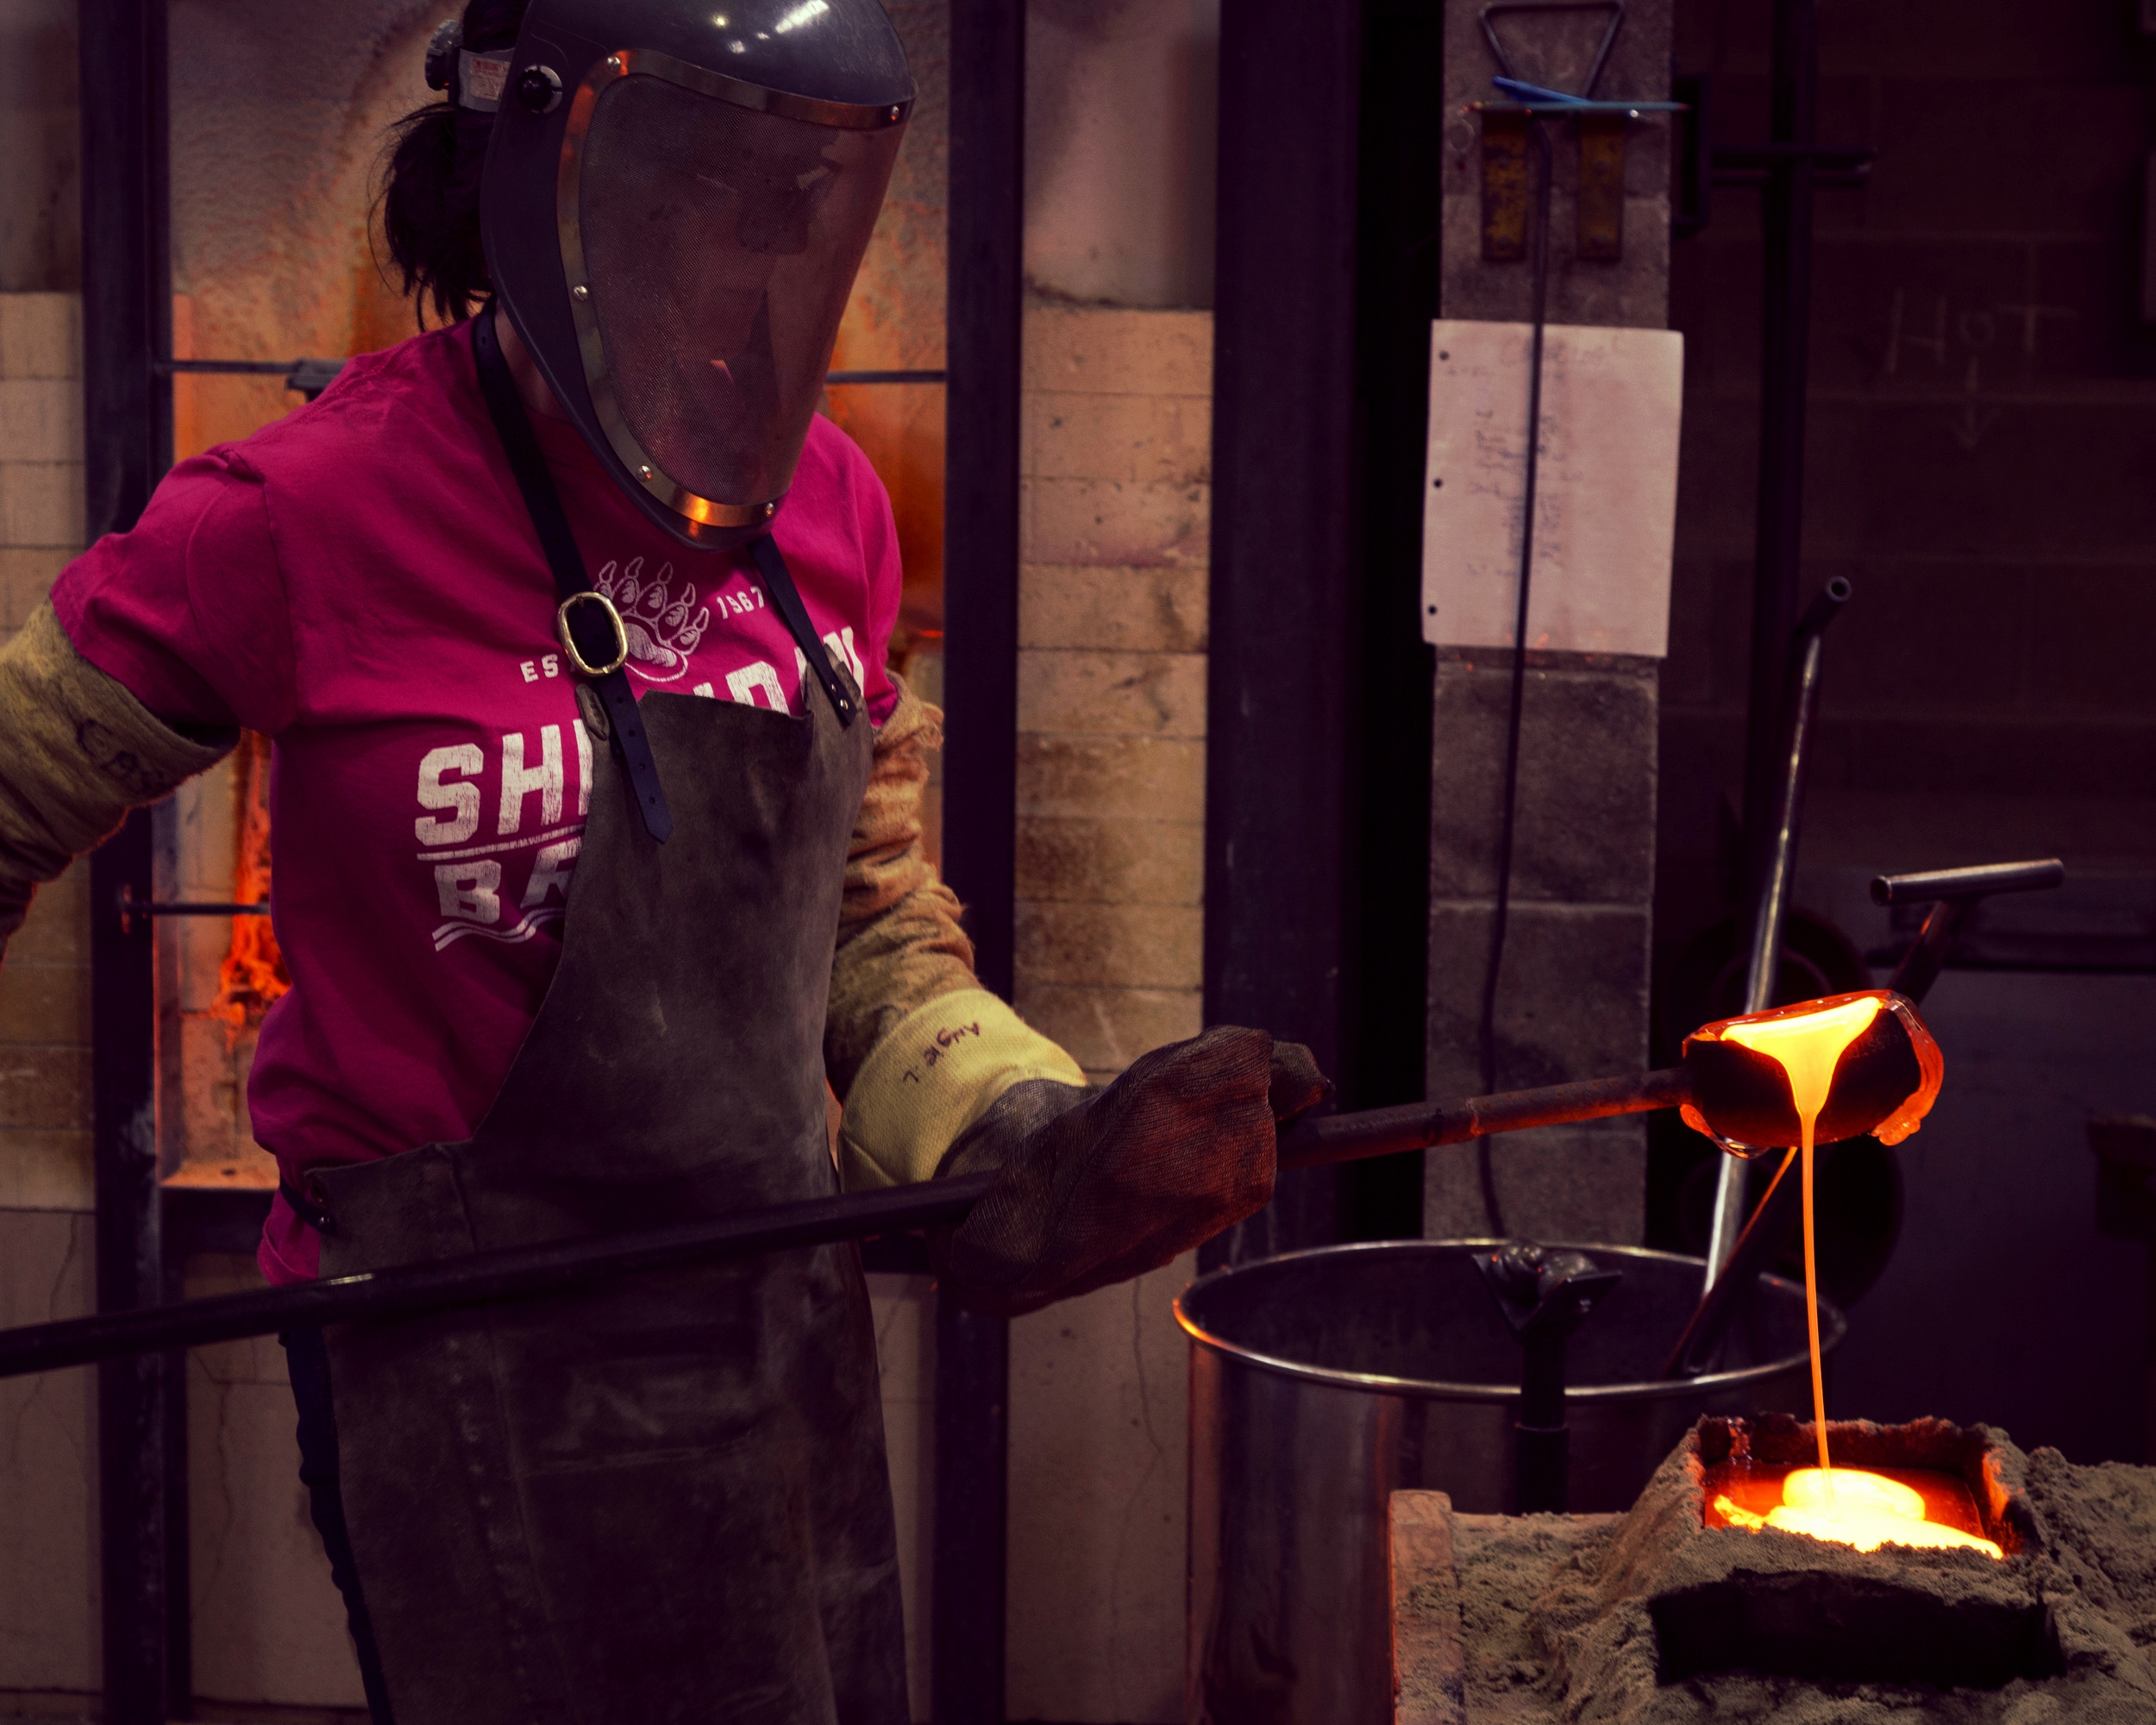 Casting glass at Sheridan College, 2015.